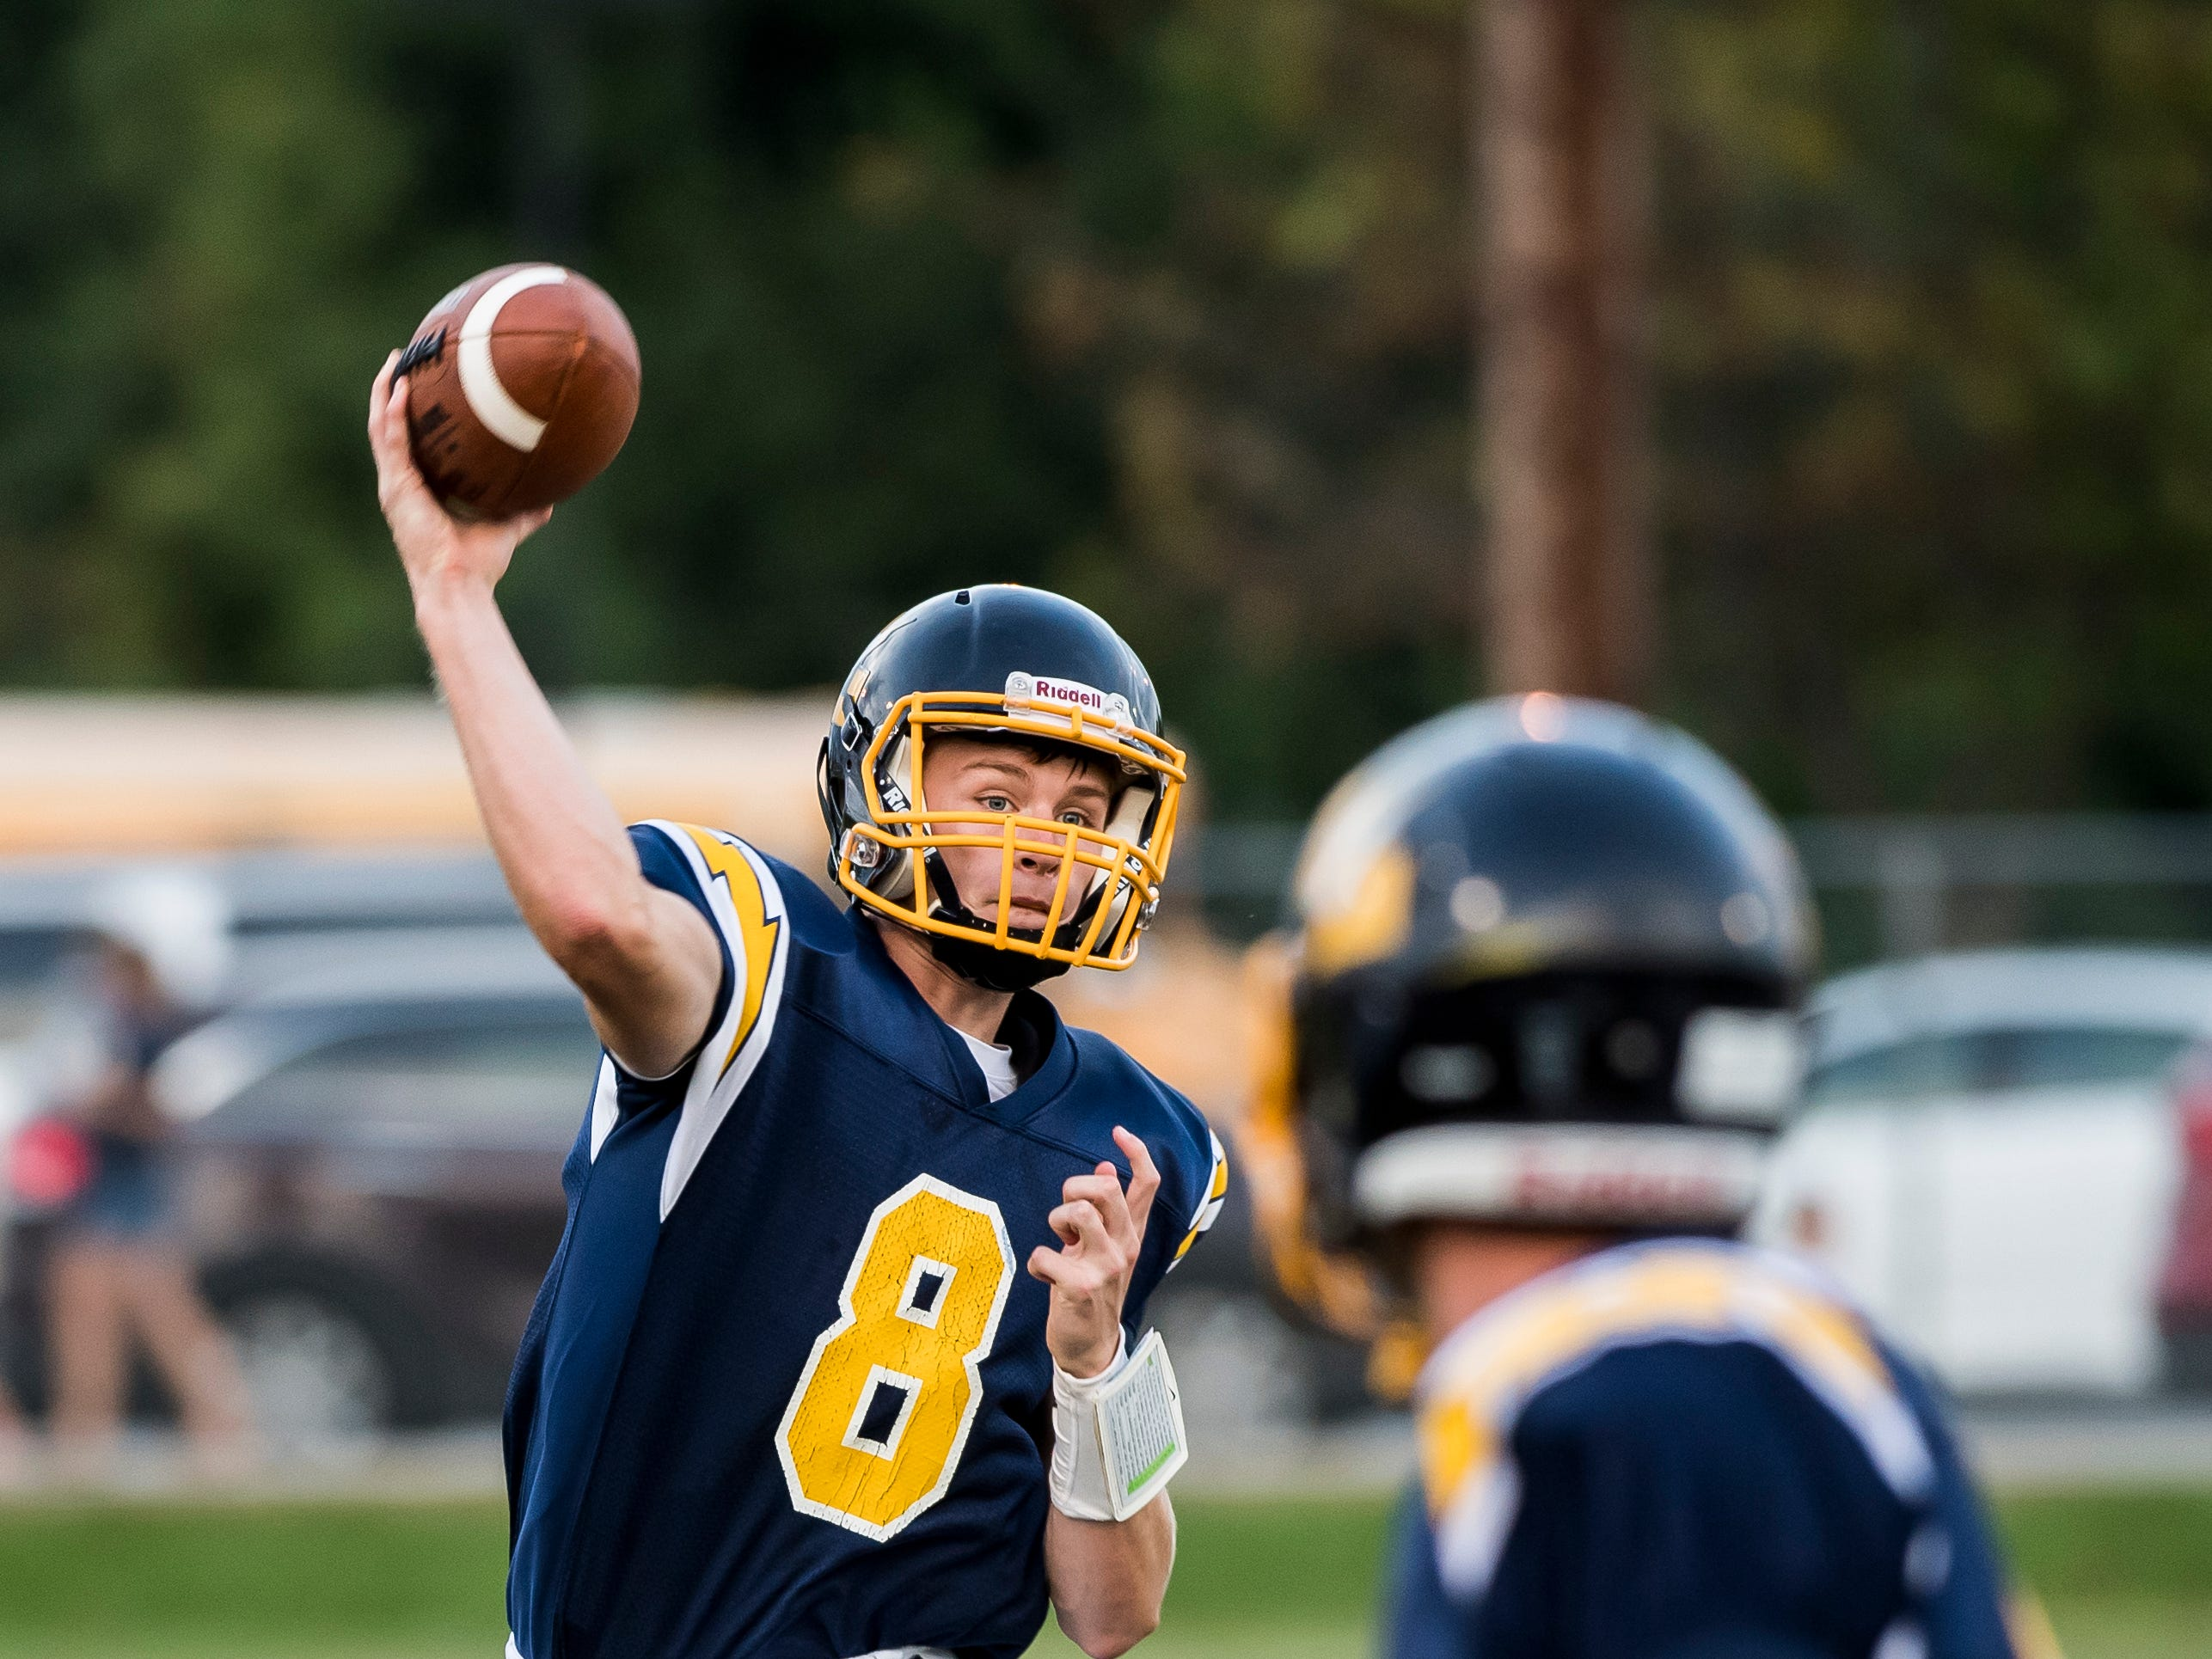 Littlestown's Jakob Lane throws during play against Susquehannock on Friday, August 31, 2018. The Bolts beat the Warriors 29-14.